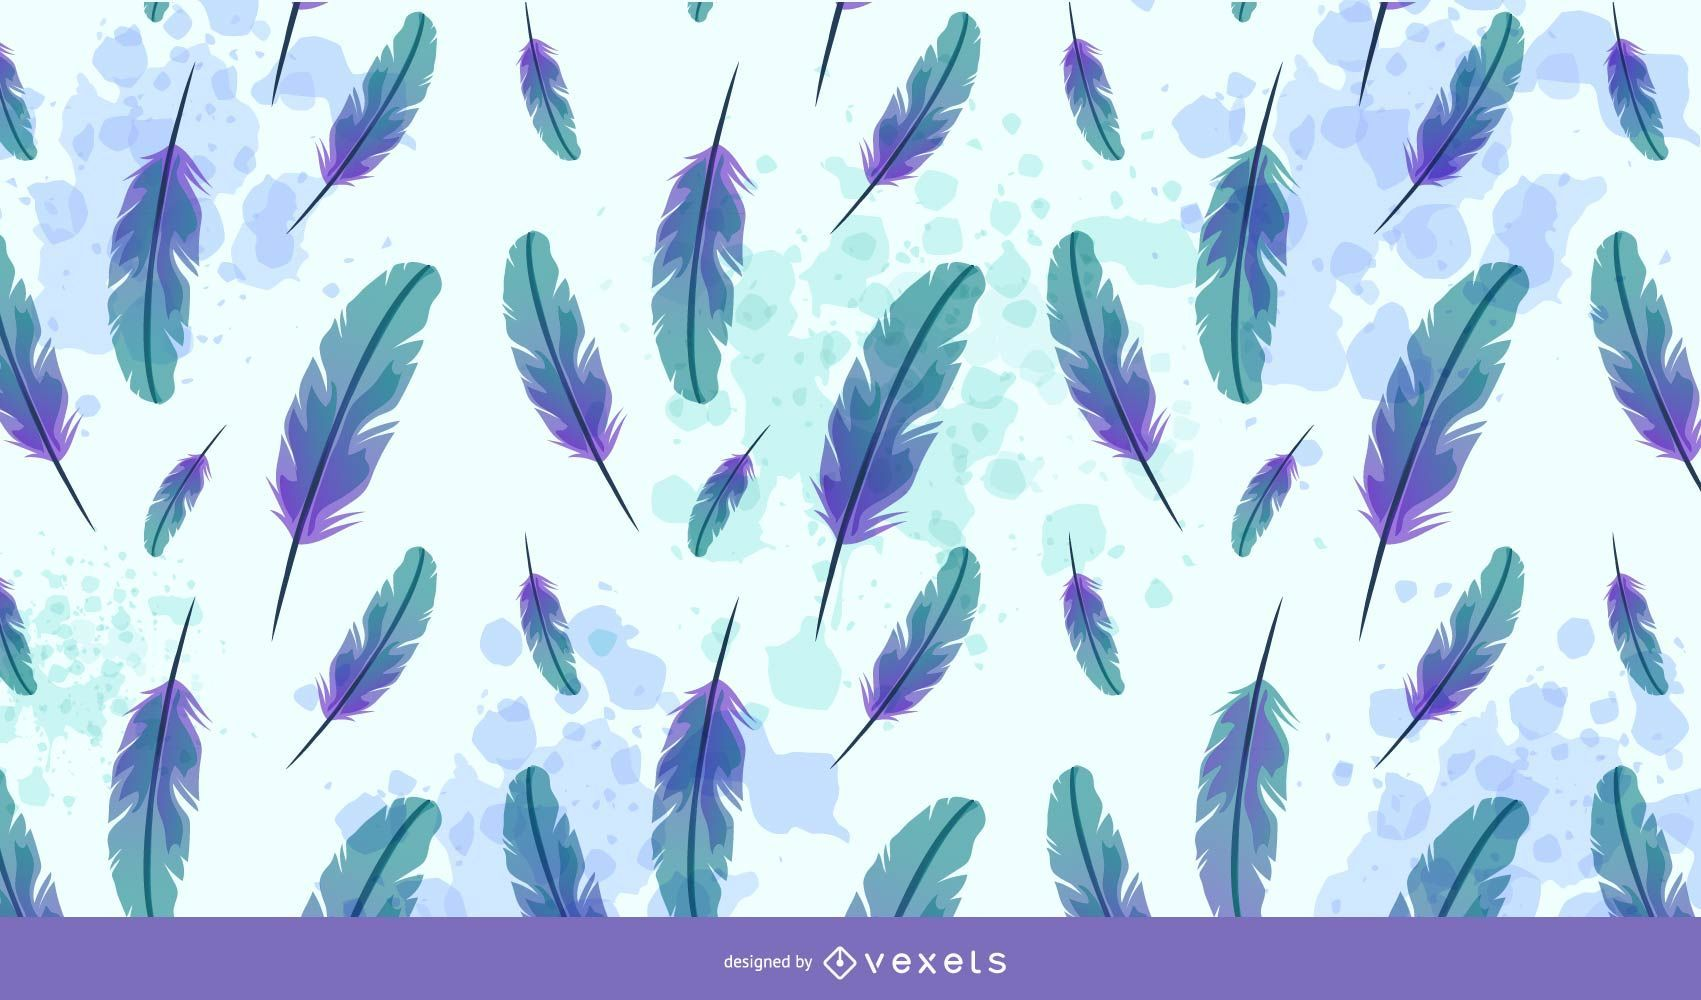 Creative Watercolor Feathers Background - Vector downloadFeather Background Twitter